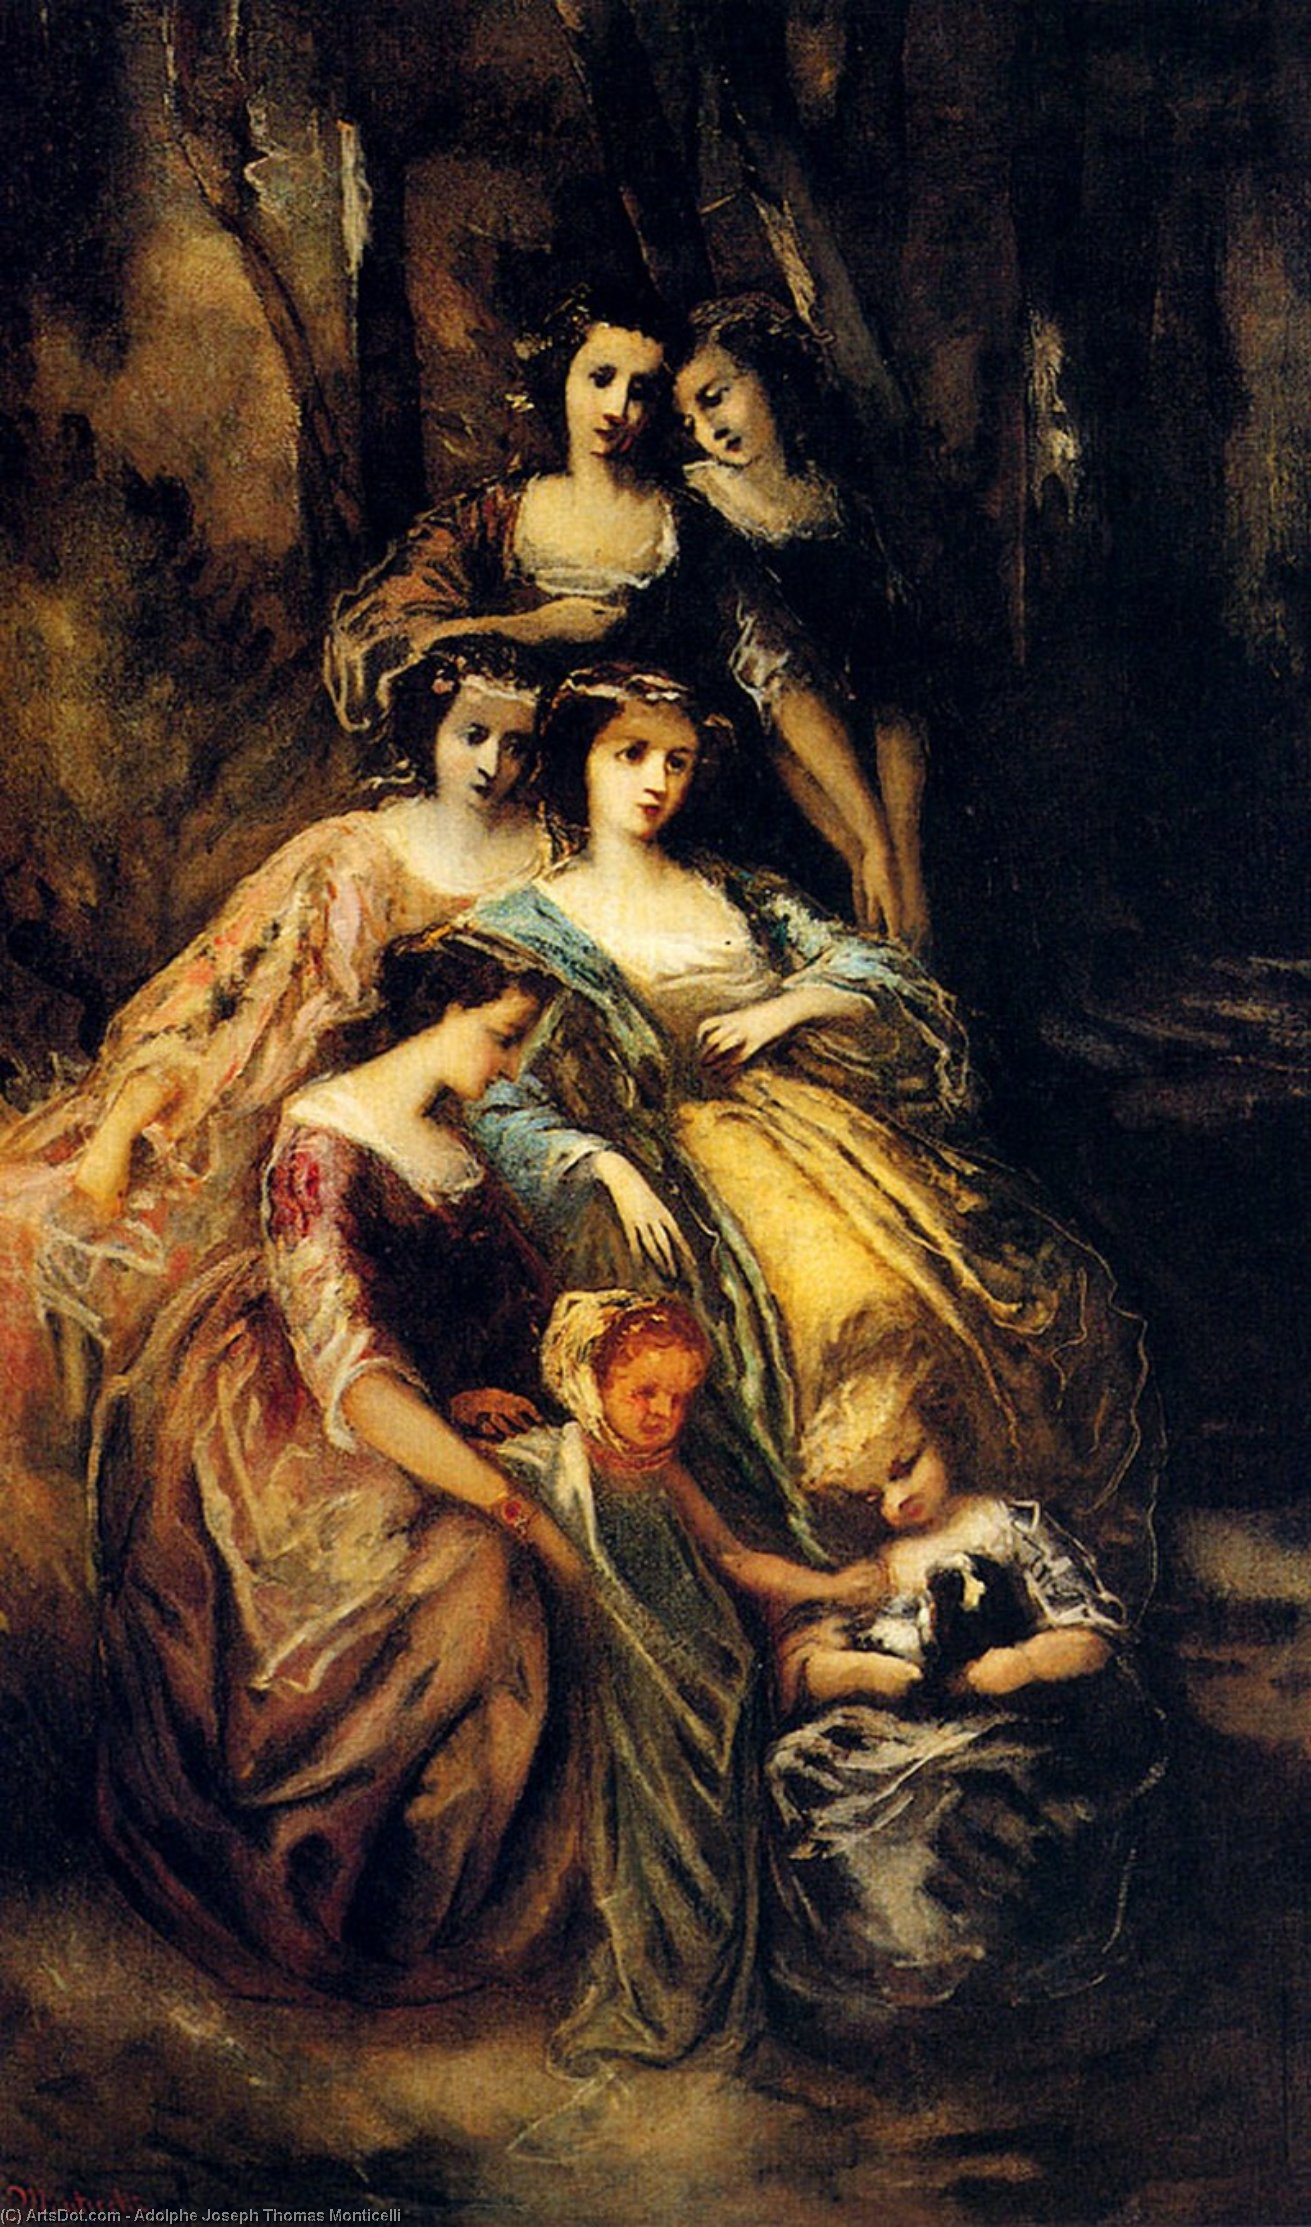 Wikioo.org - The Encyclopedia of Fine Arts - Painting, Artwork by Adolphe Joseph Thomas Monticelli - Empress Eugenie And Her Attendants